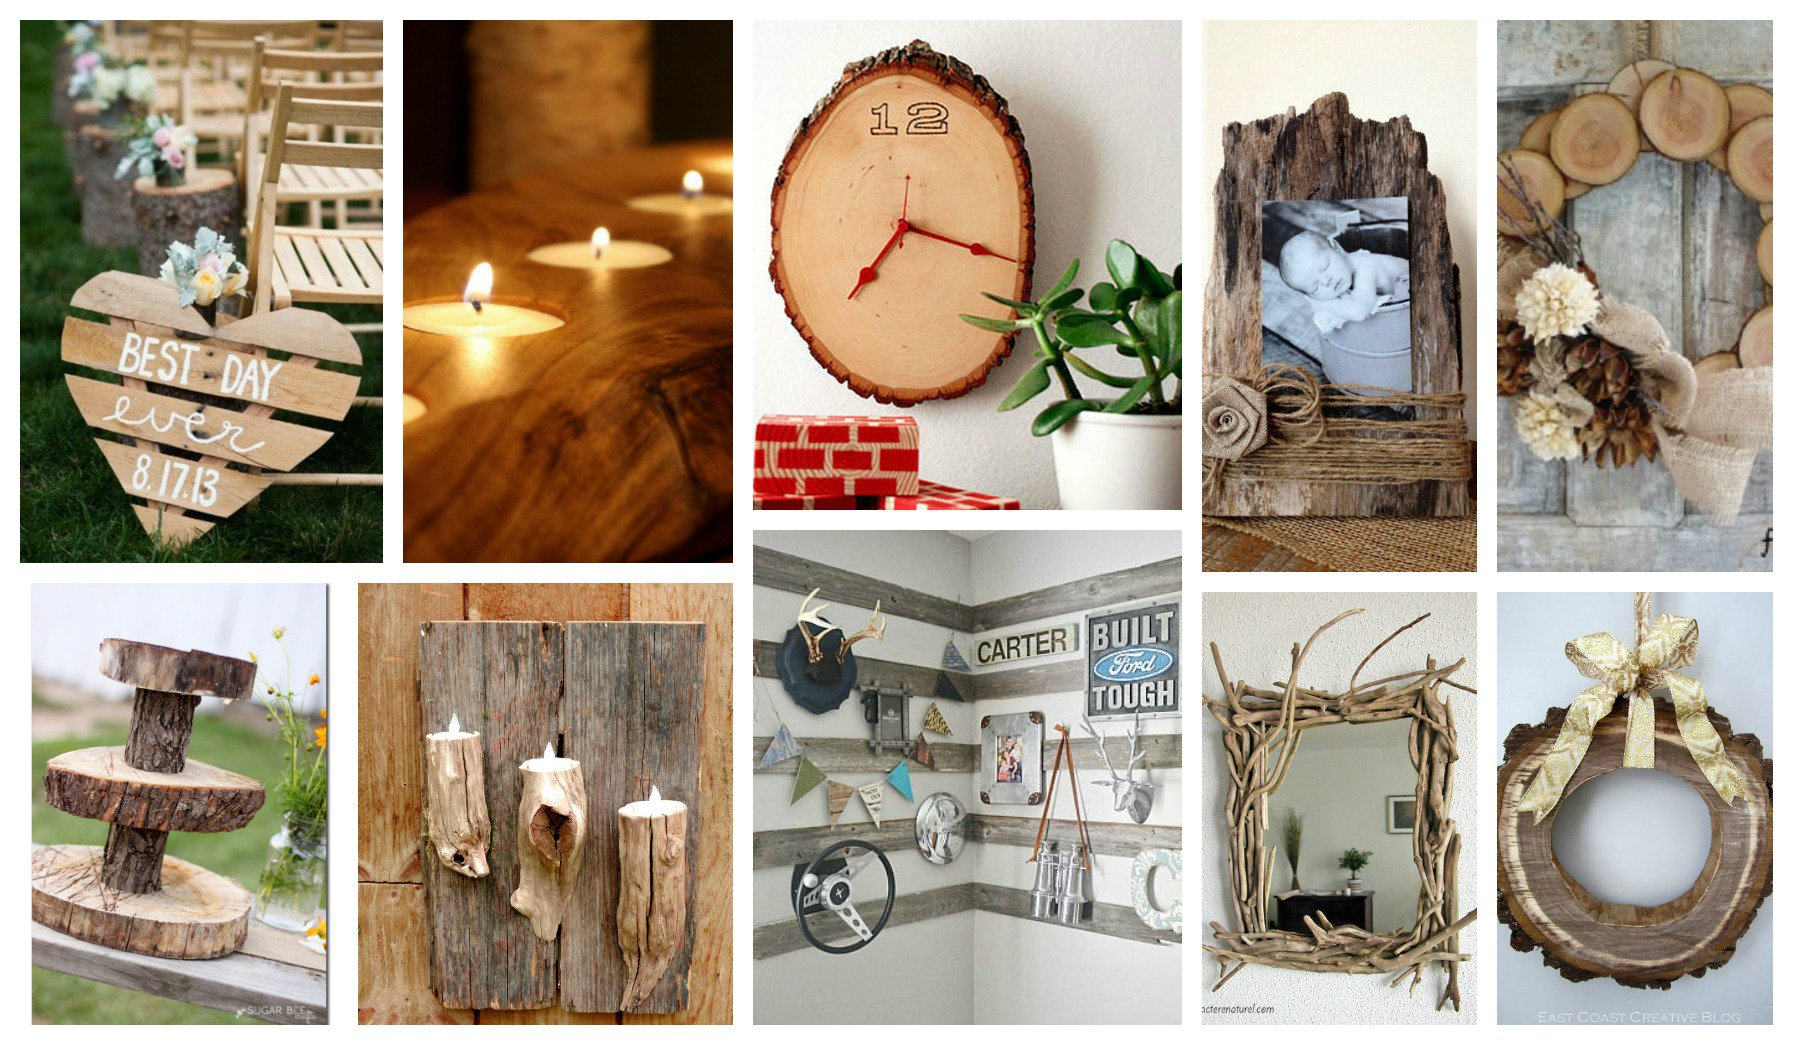 Stupendous diy rustic wood decor that will make you say for Wooden art home decorations